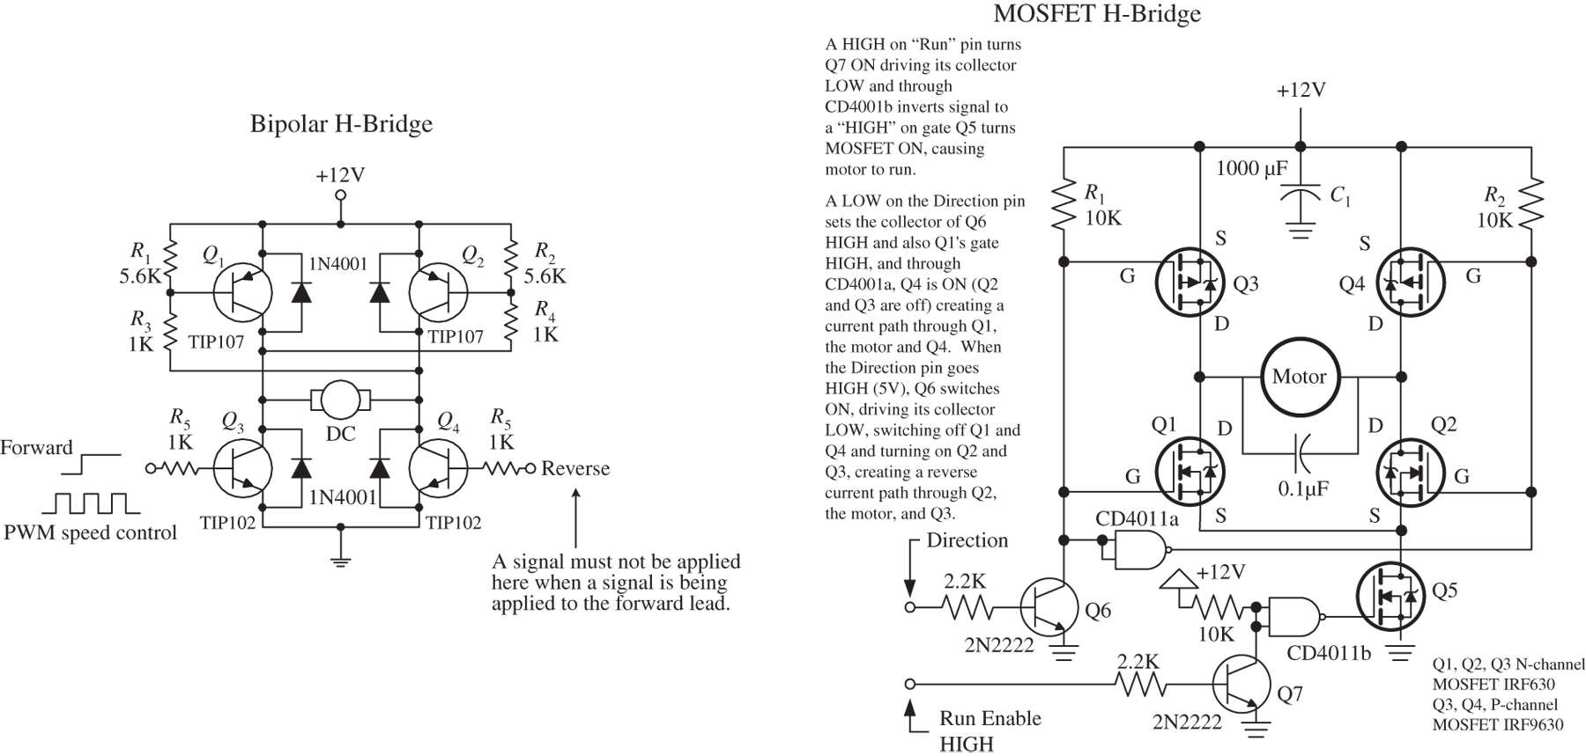 hight resolution of this sets q4 and q1 into conduction allowing current to pass through the motor in the opposite direction the mosfet h bridge works in a similar manner